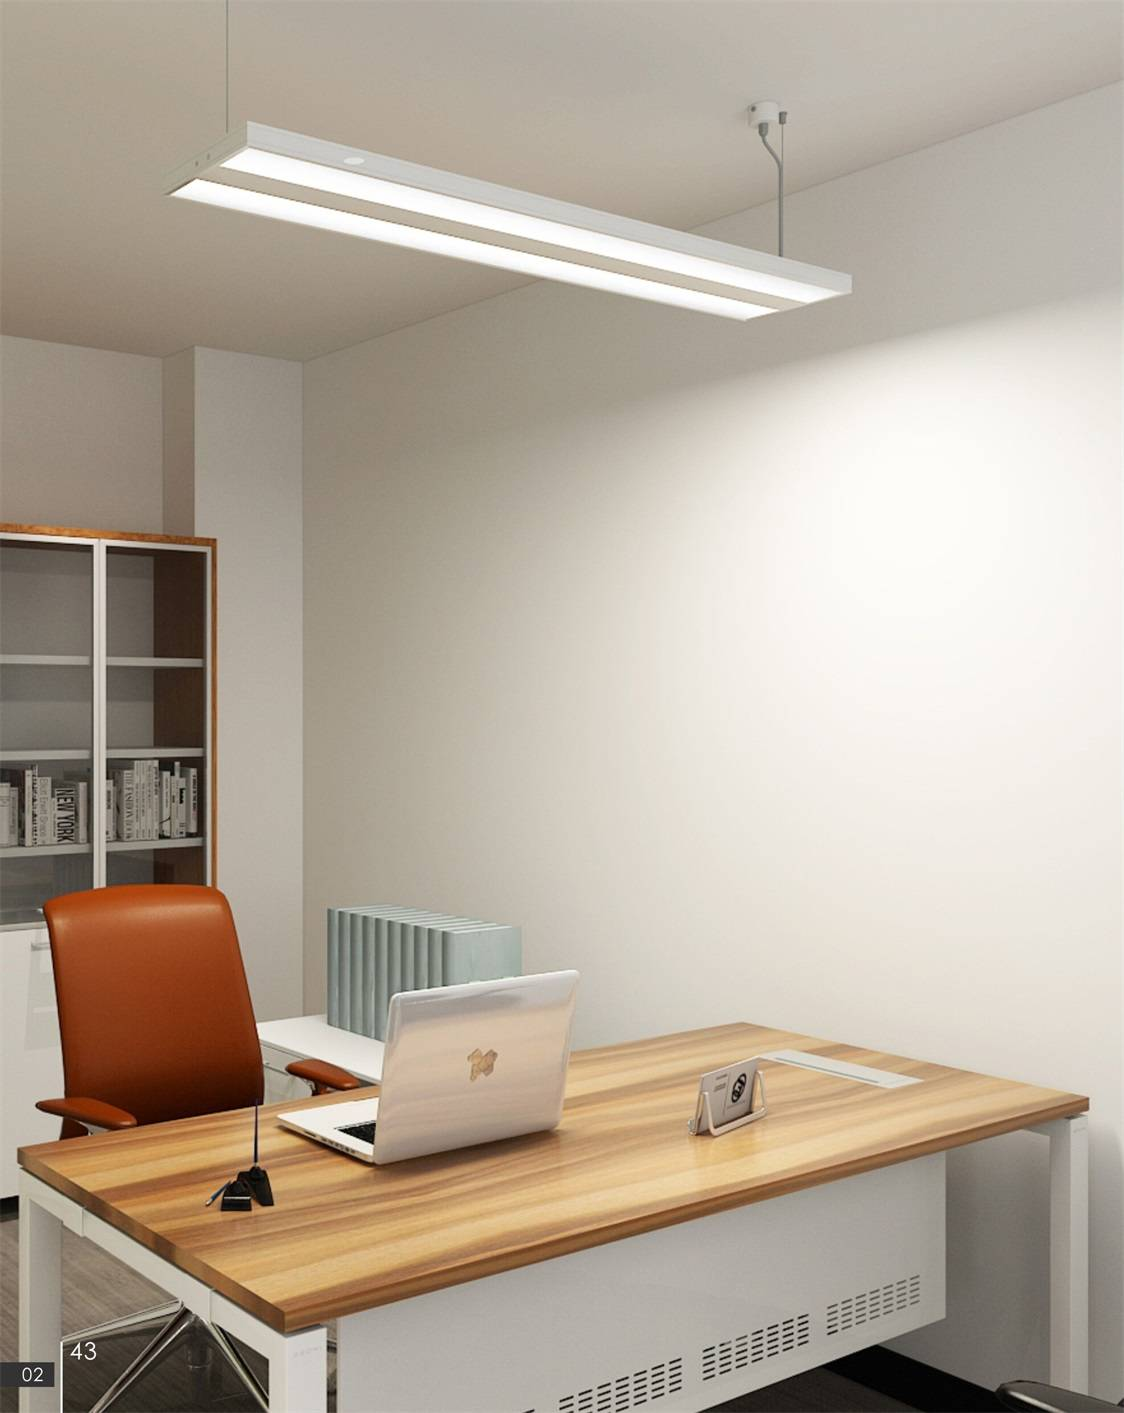 Uispair Modern Office 8W 32V Aluminium Alloy LED Hanging Lamp Pendant Lamp